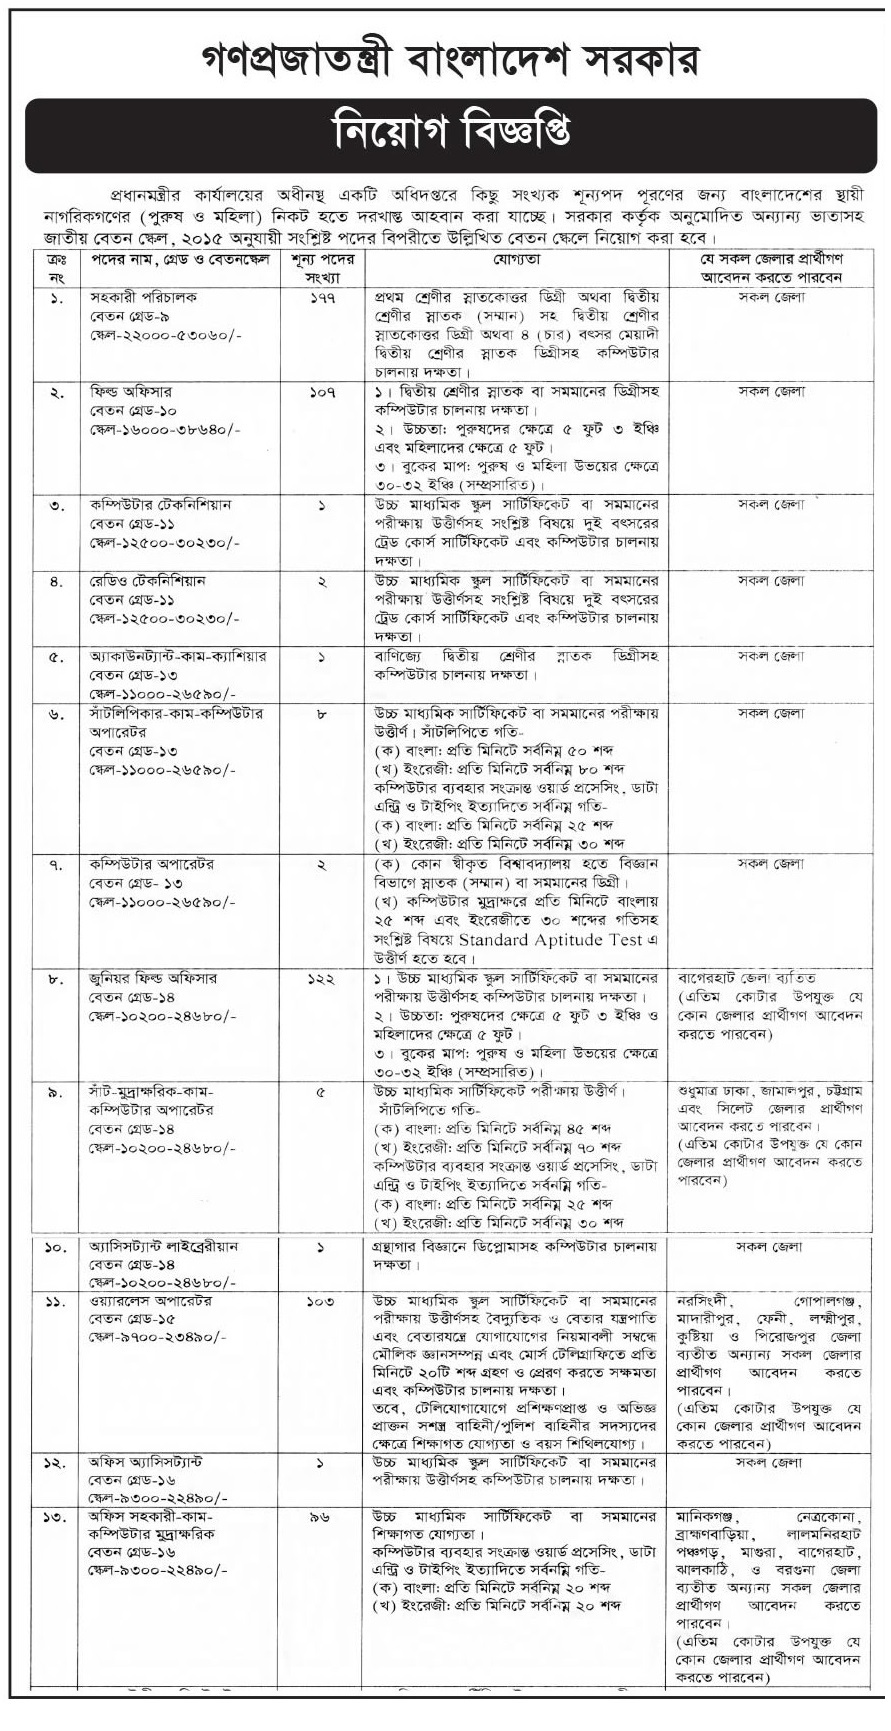 Office Of the prime minister Job Circular 2019